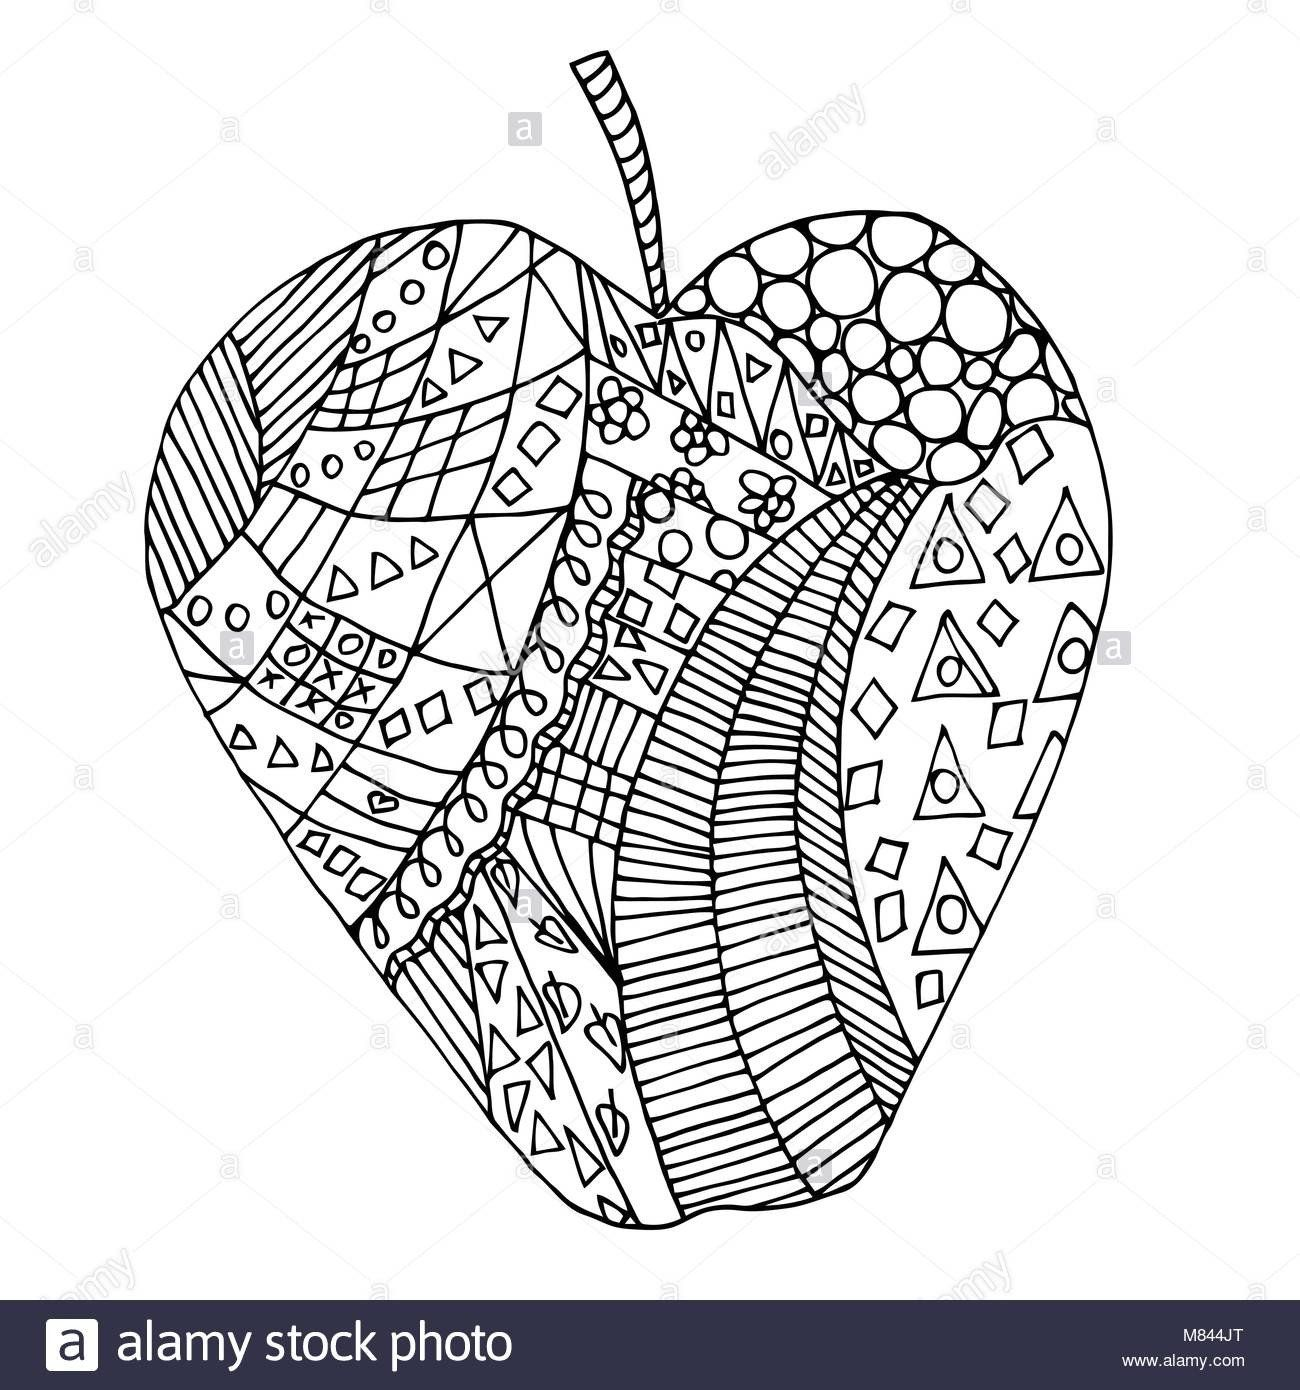 Human Heart Coloring Pages New Heart Diagram Coloring Sheet Best Human Heart Diagram A In 2020 Heart Coloring Pages Love Coloring Pages Coloring Books